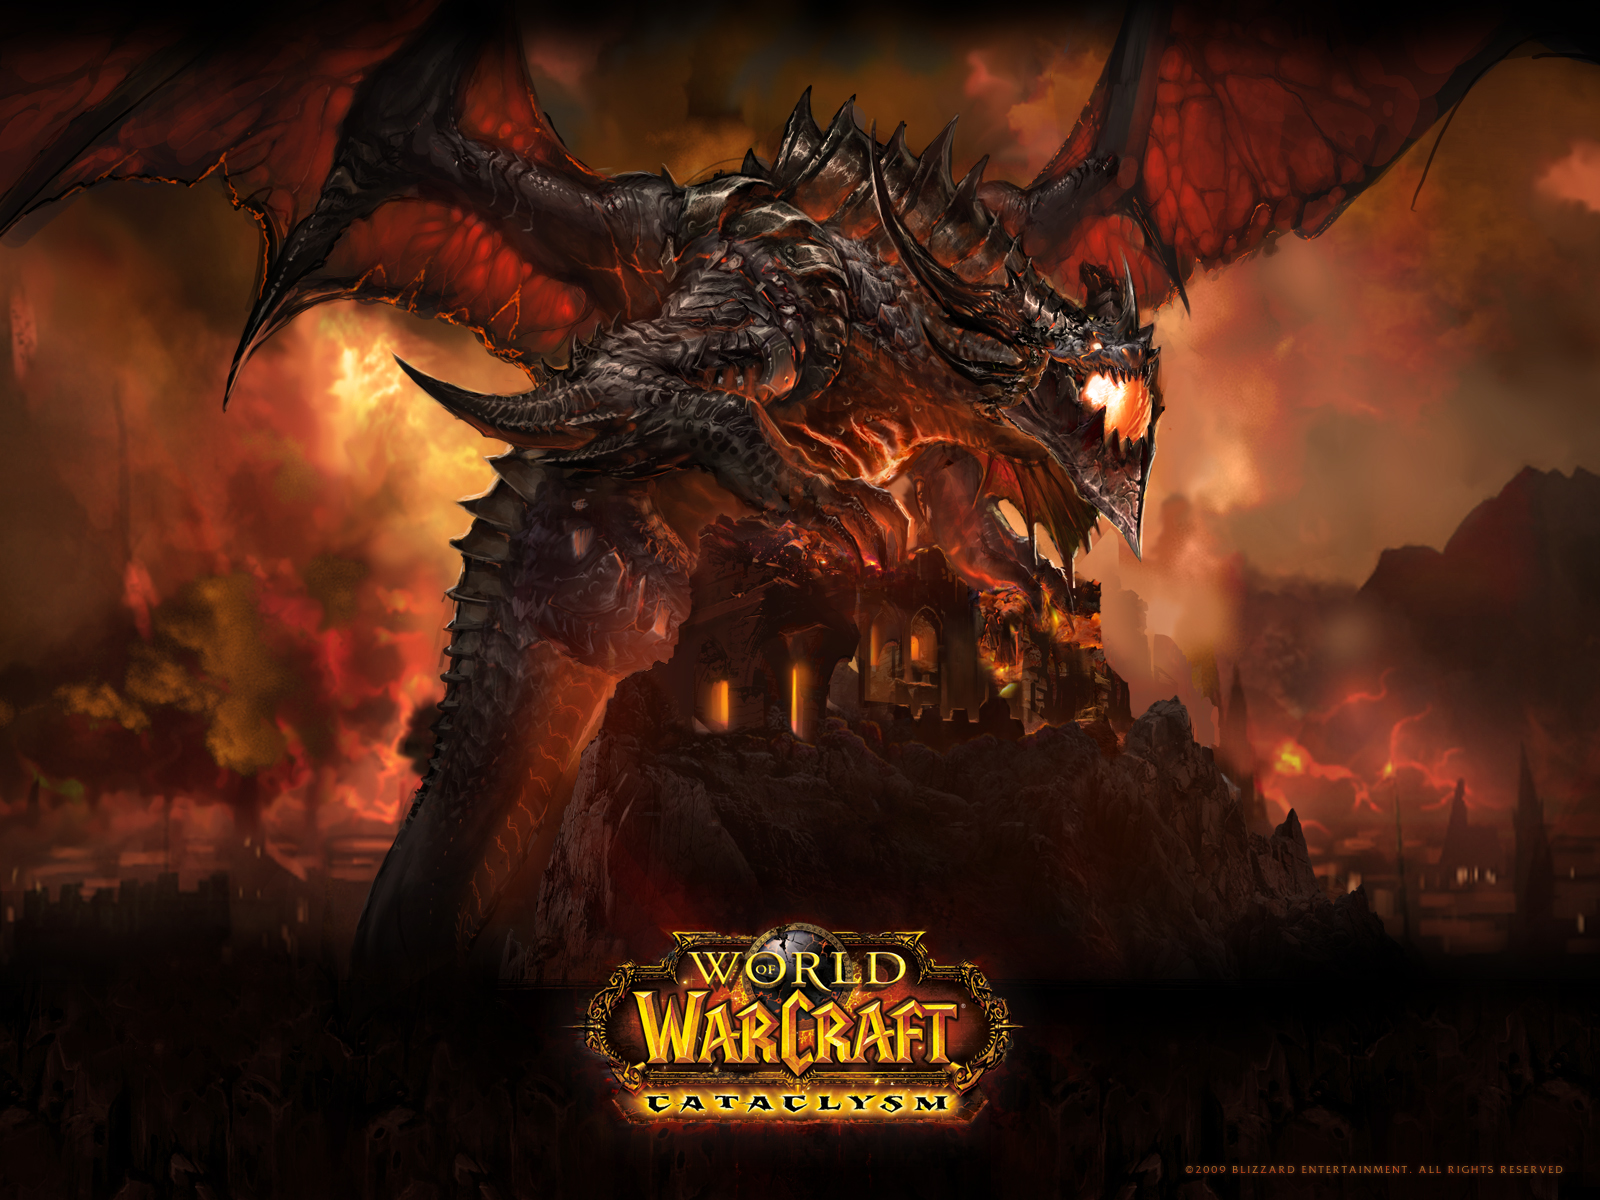 World of Warcraft: Cataclysm &#8211; Fastest-selling PC Game